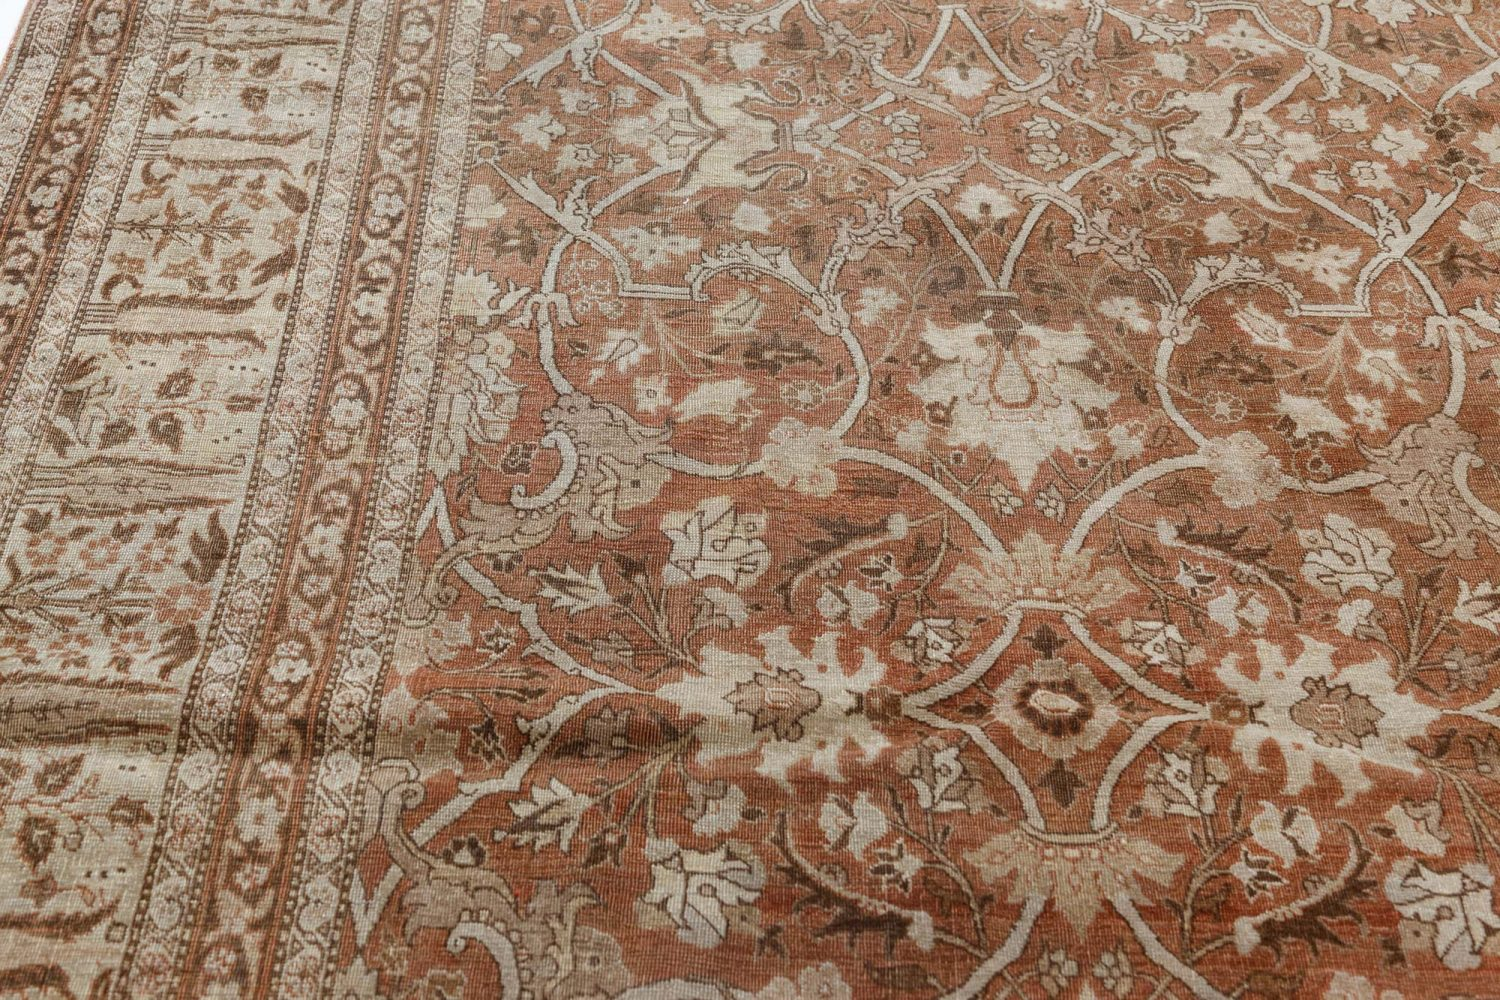 Vintage Persian Tabriz Cinnamon and Sand Handwoven Wool Rug BB7485